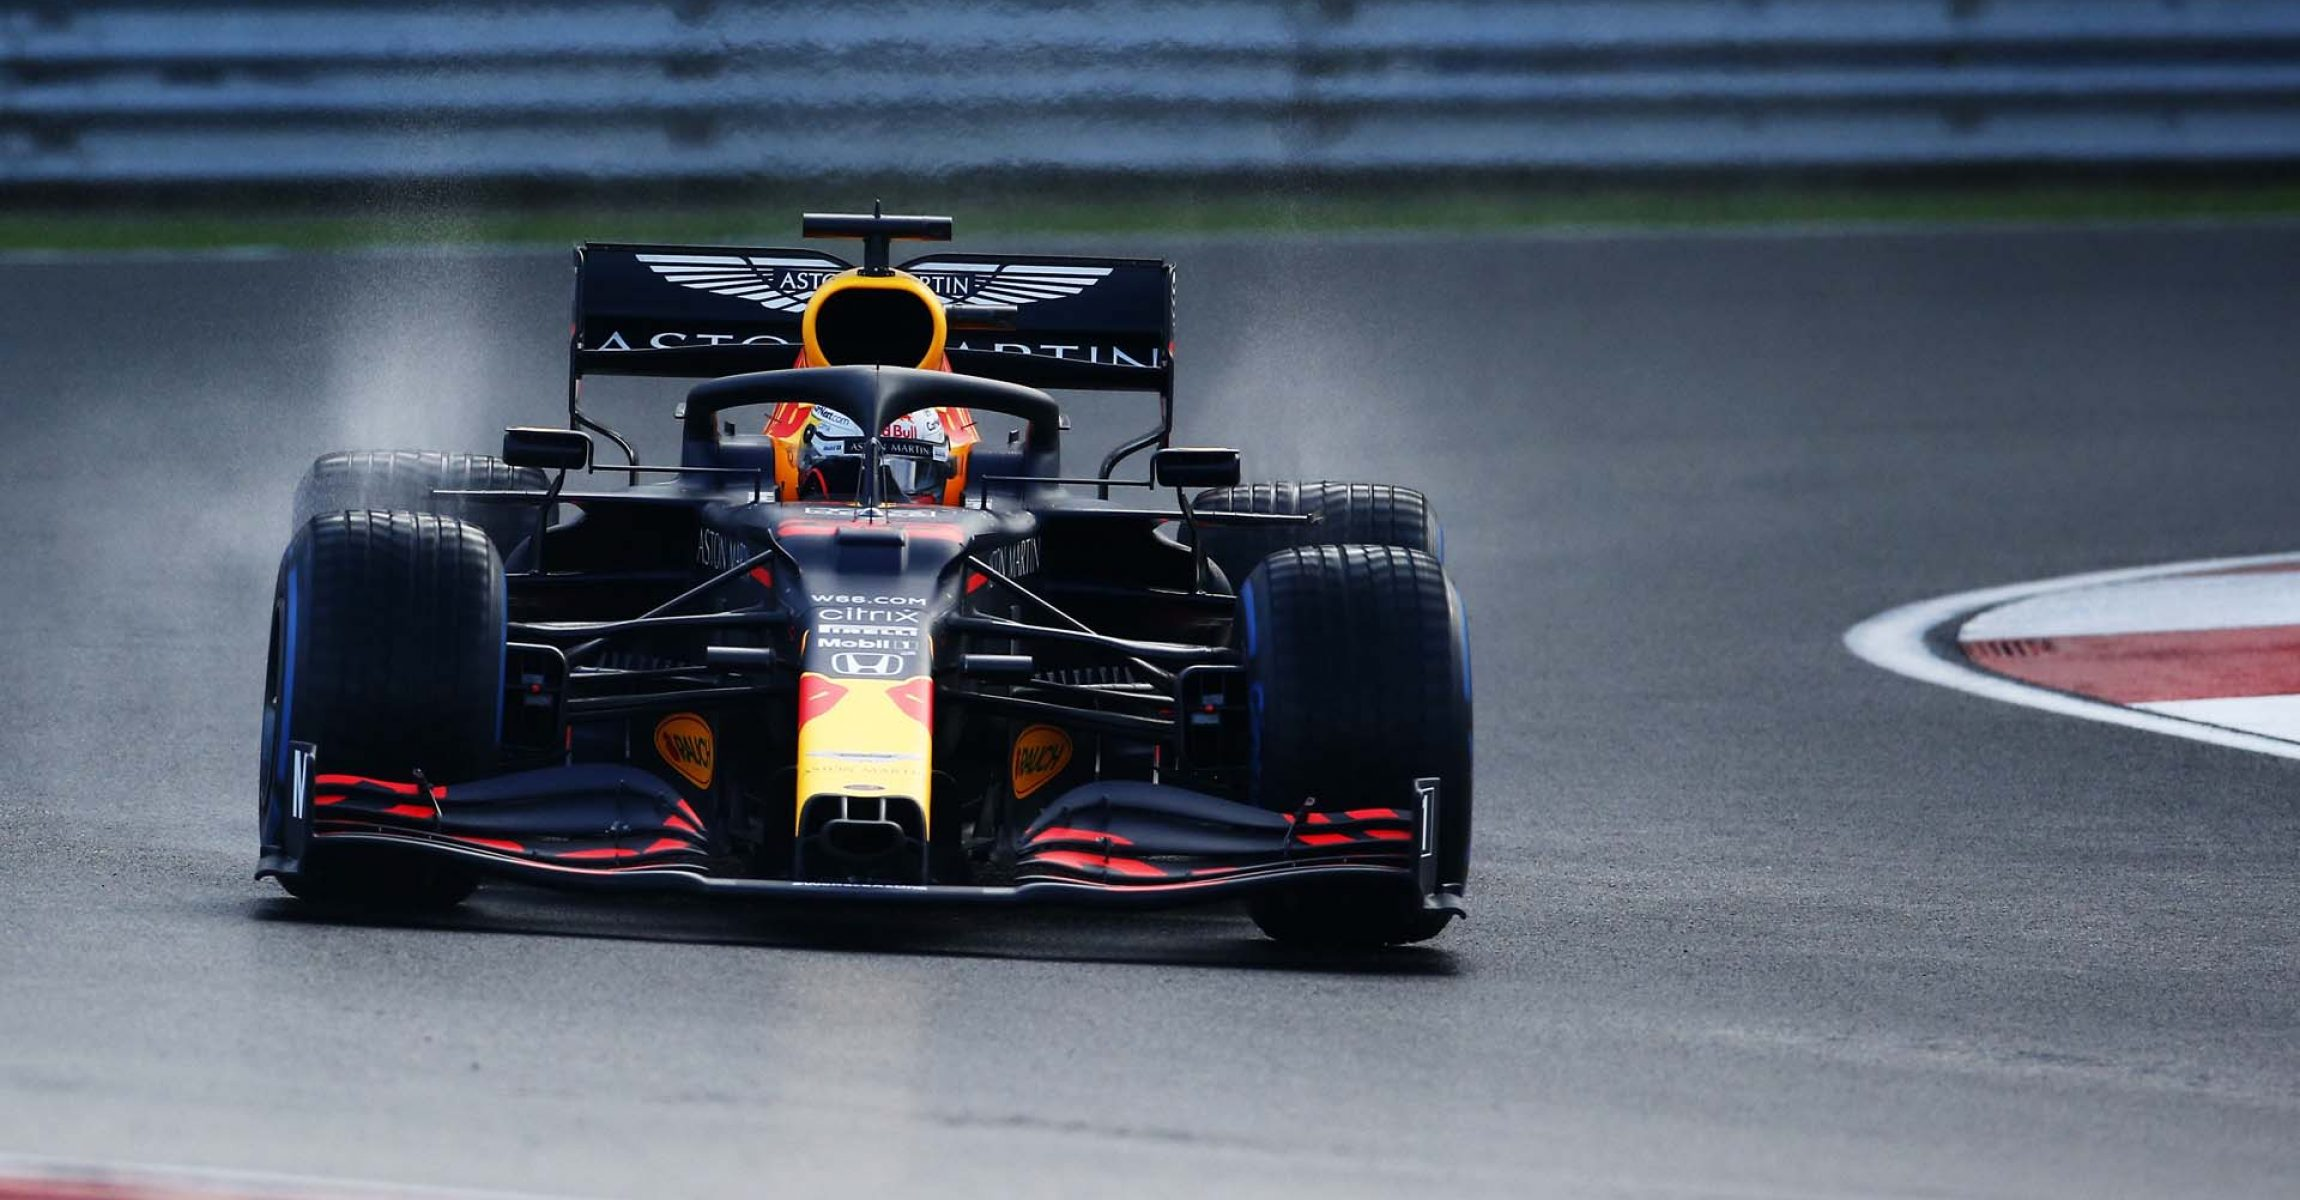 ISTANBUL, TURKEY - NOVEMBER 14: Max Verstappen of the Netherlands driving the (33) Aston Martin Red Bull Racing RB16 on track during qualifying ahead of the F1 Grand Prix of Turkey at Intercity Istanbul Park on November 14, 2020 in Istanbul, Turkey. (Photo by Kenan Asyali - Pool/Getty Images)